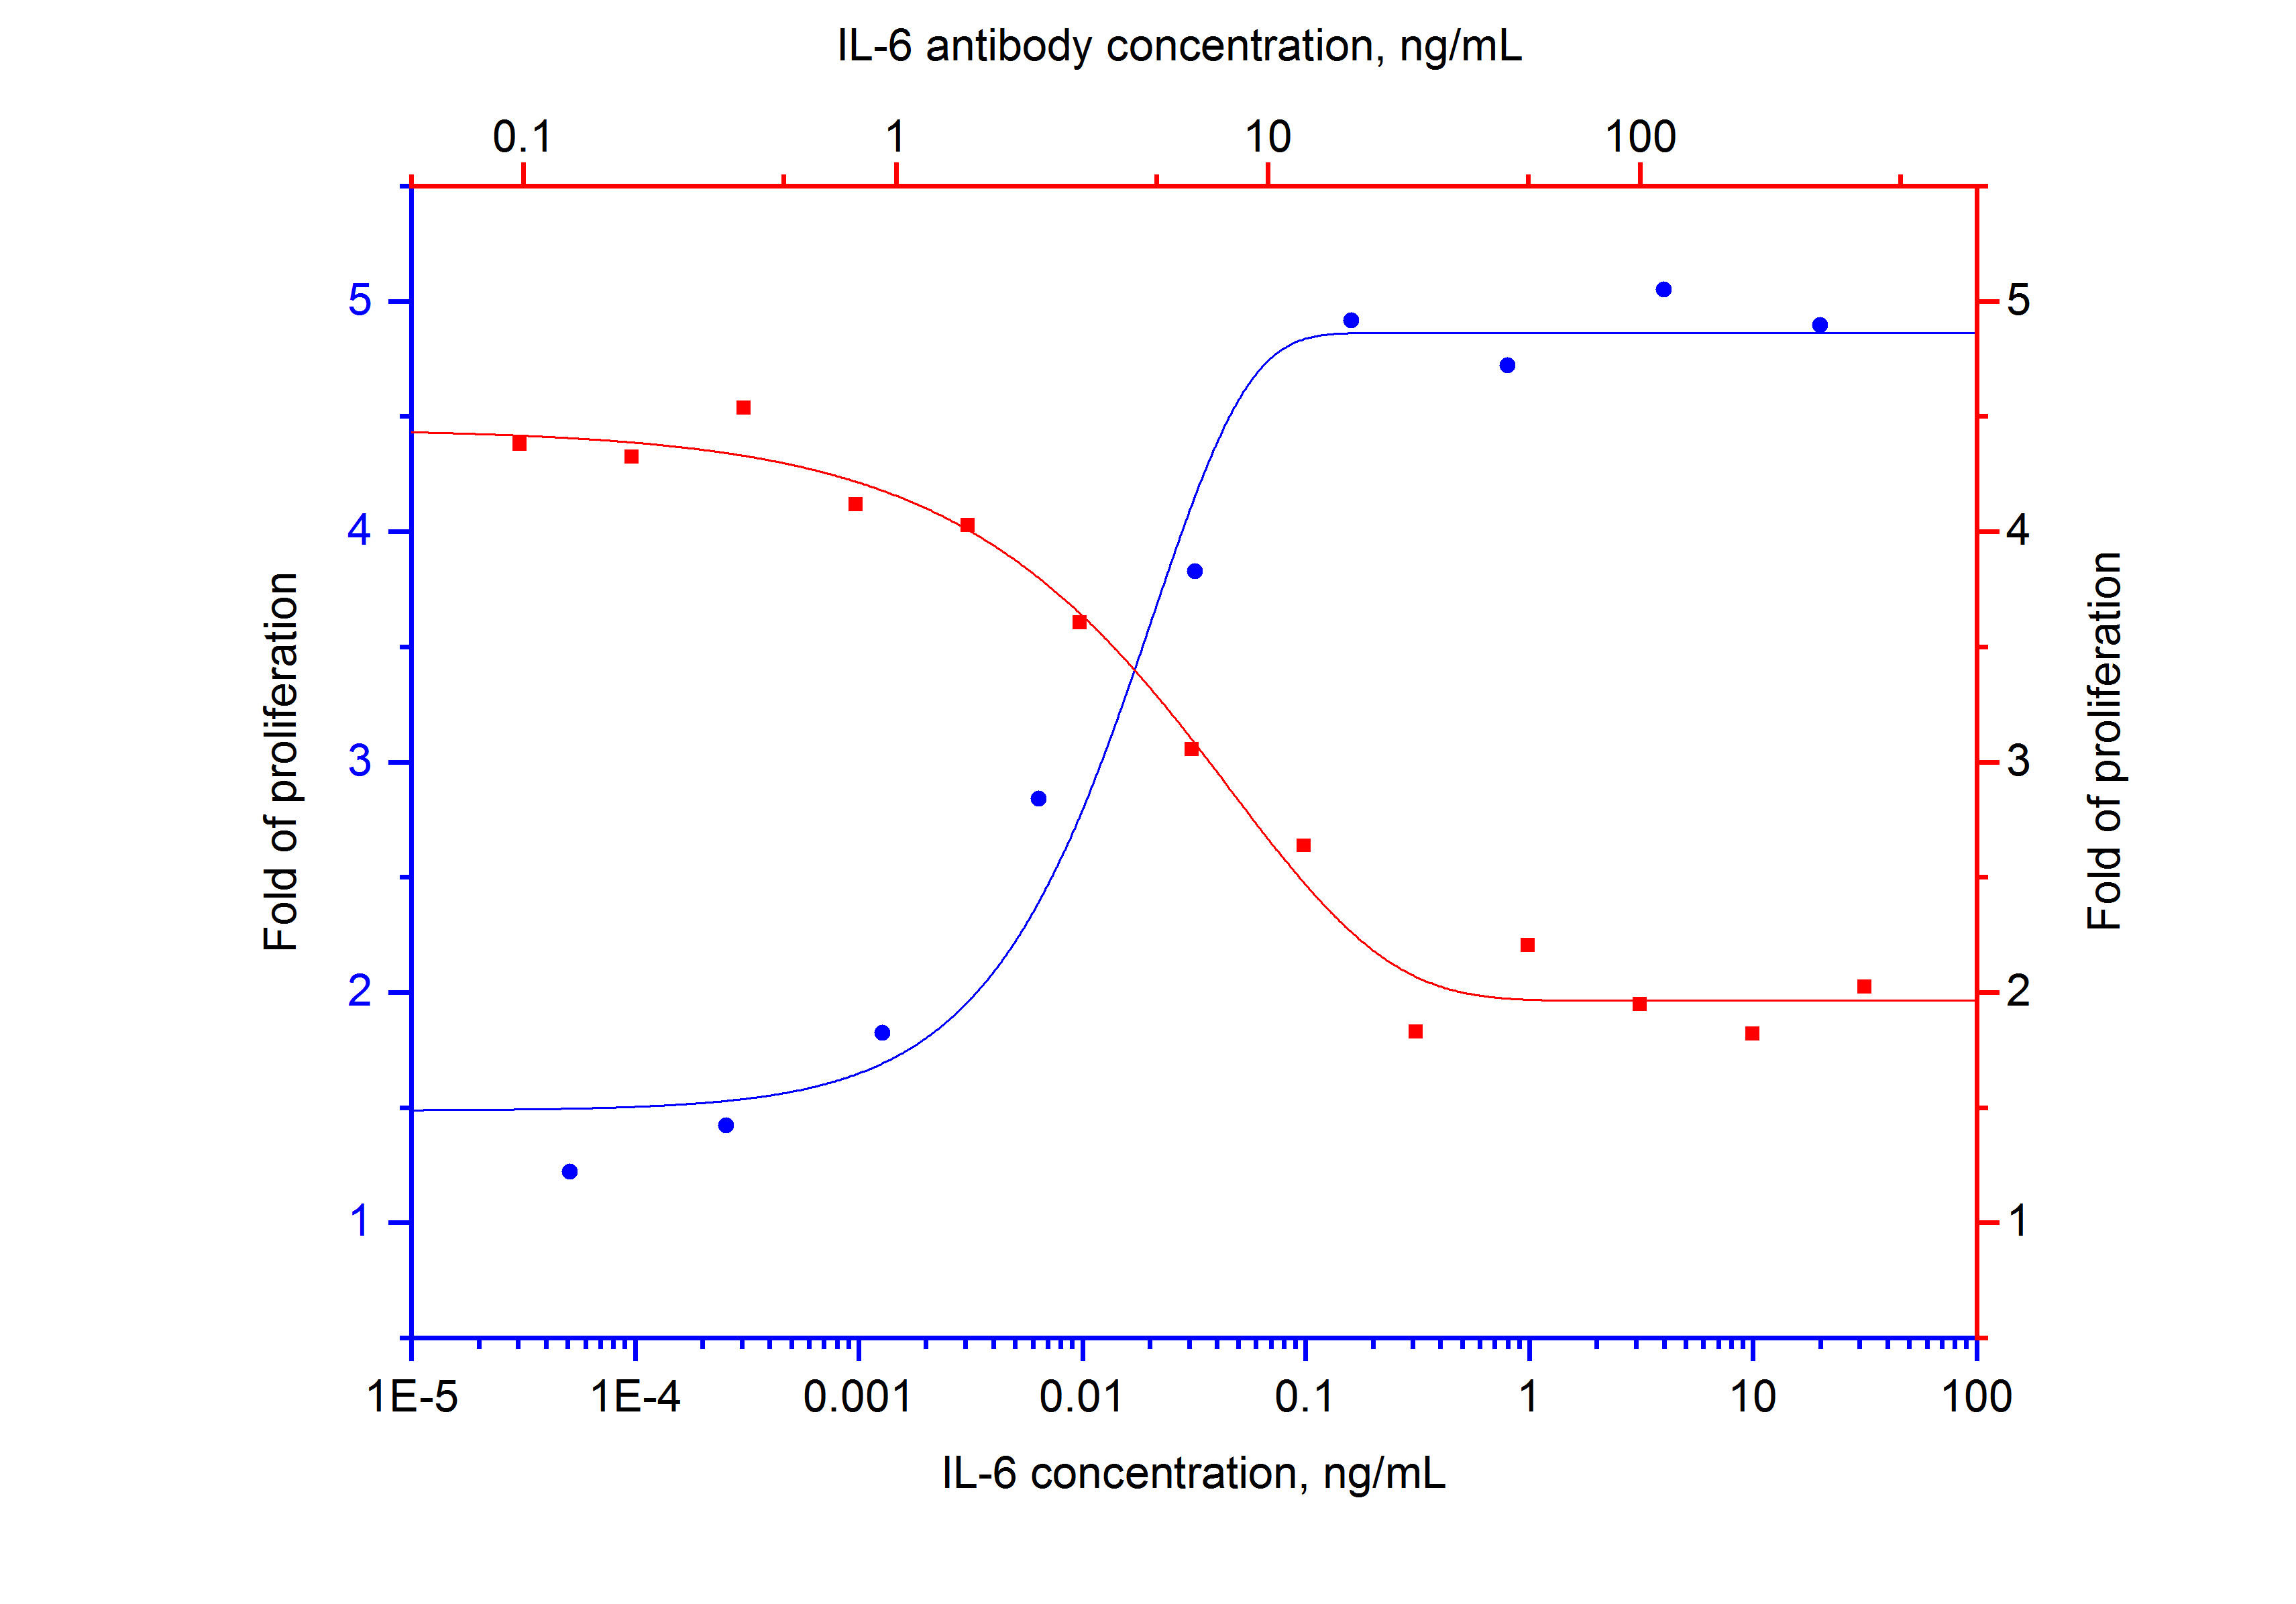 Recombinant human IL-6 (Cat.NO. HZ-1019) stimulates proliferation of hybridoma (Proteintech mouse anti-GST clone 3G12B10) in a dose-dependent manner (blue curve, refer to bottom X-left Y).  The activity of human IL-6 (1 ng/mL HZ-1019) is neutralized by mouse anti-human IL-6 monoclonal antibody 69001-1-Ig at serial dose (red curve, refer to top X-right Y). The ND50 is typically 3-15 ng/mL.